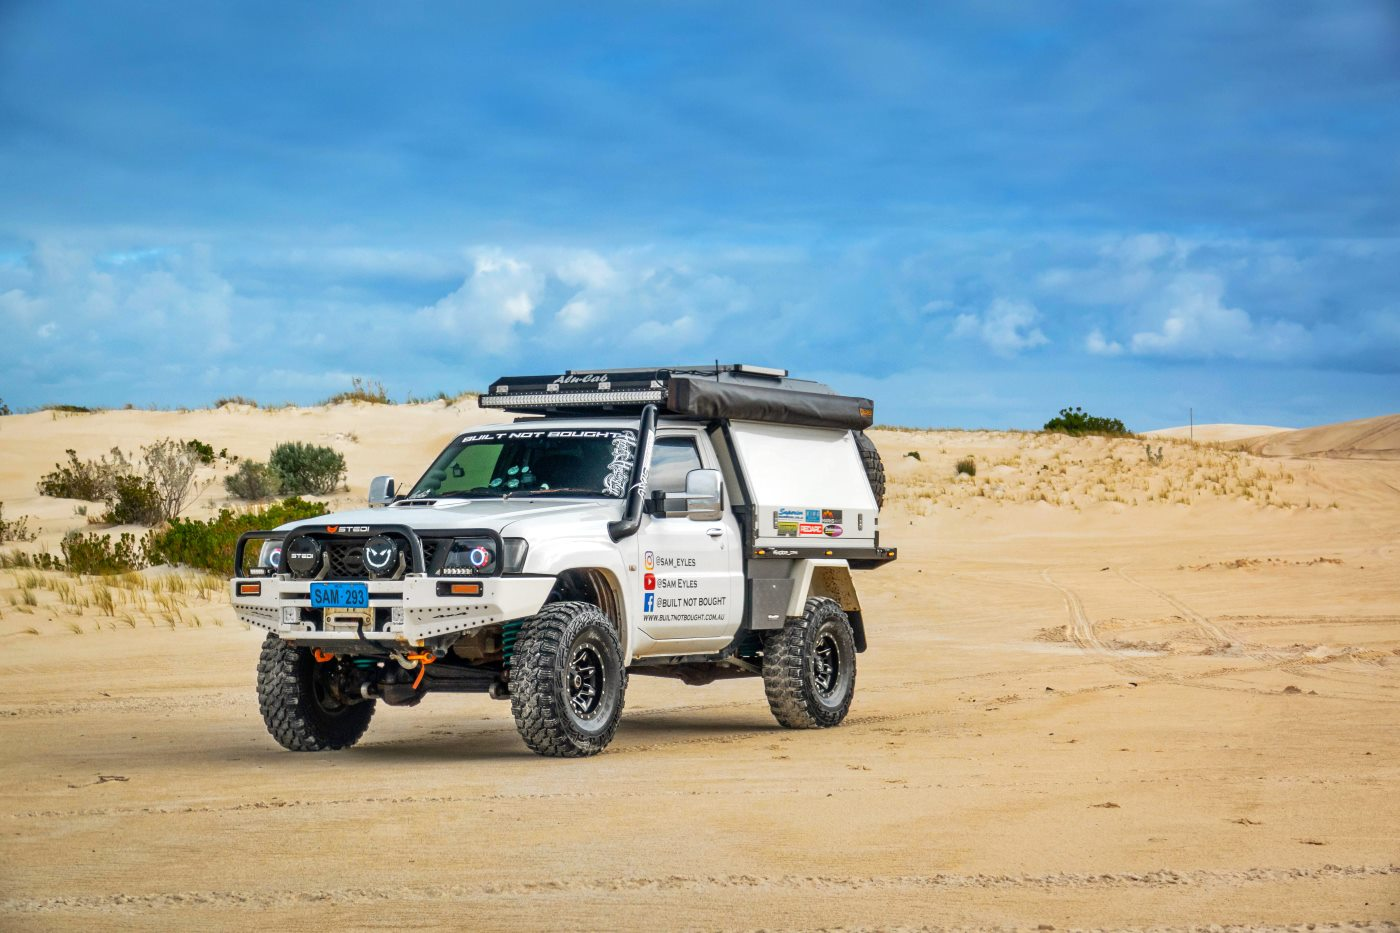 2008 Nissan Patrol GU Series 4, Modified.